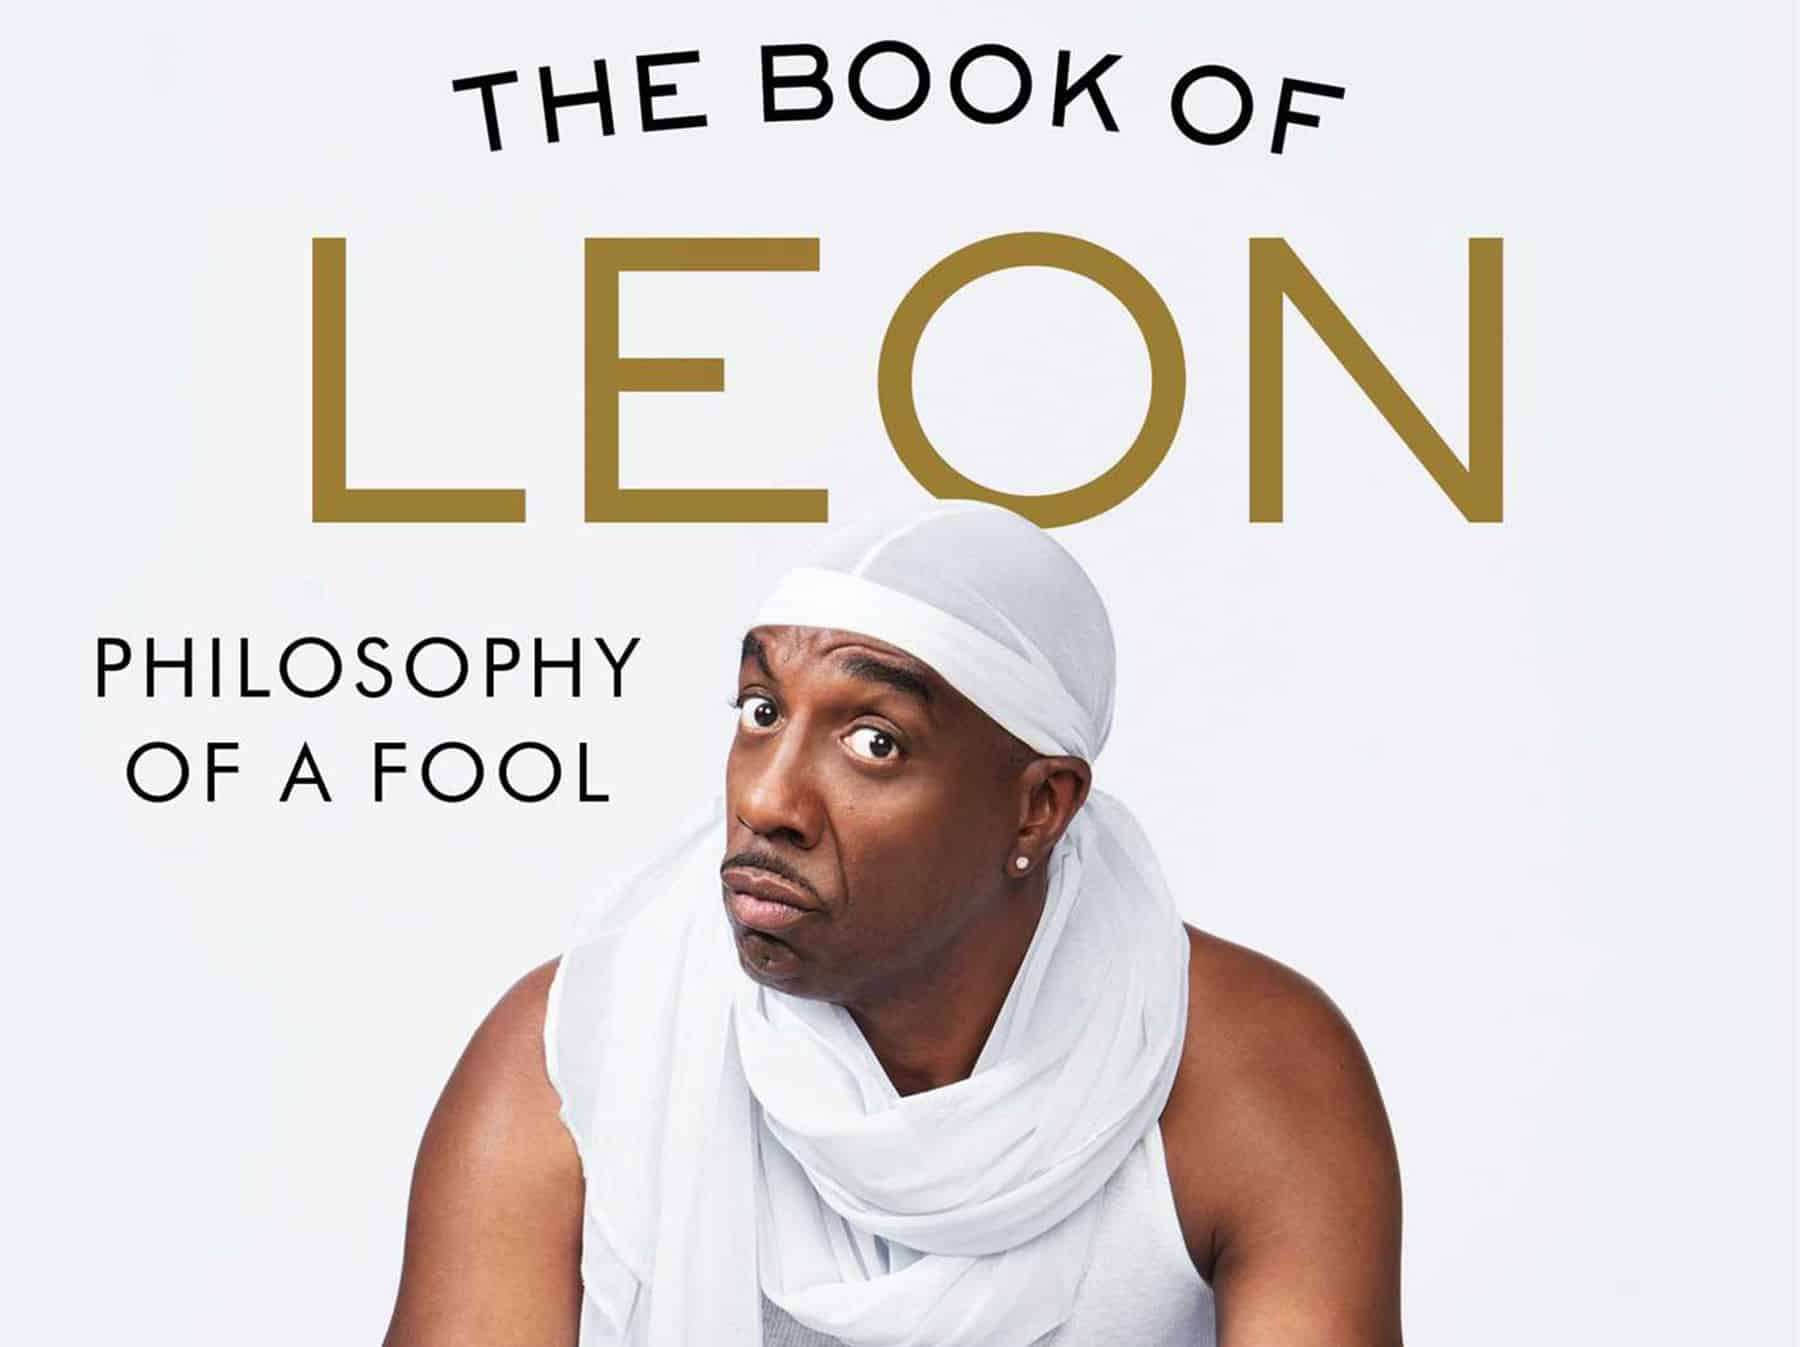 The Book of Leon – funny philosophy